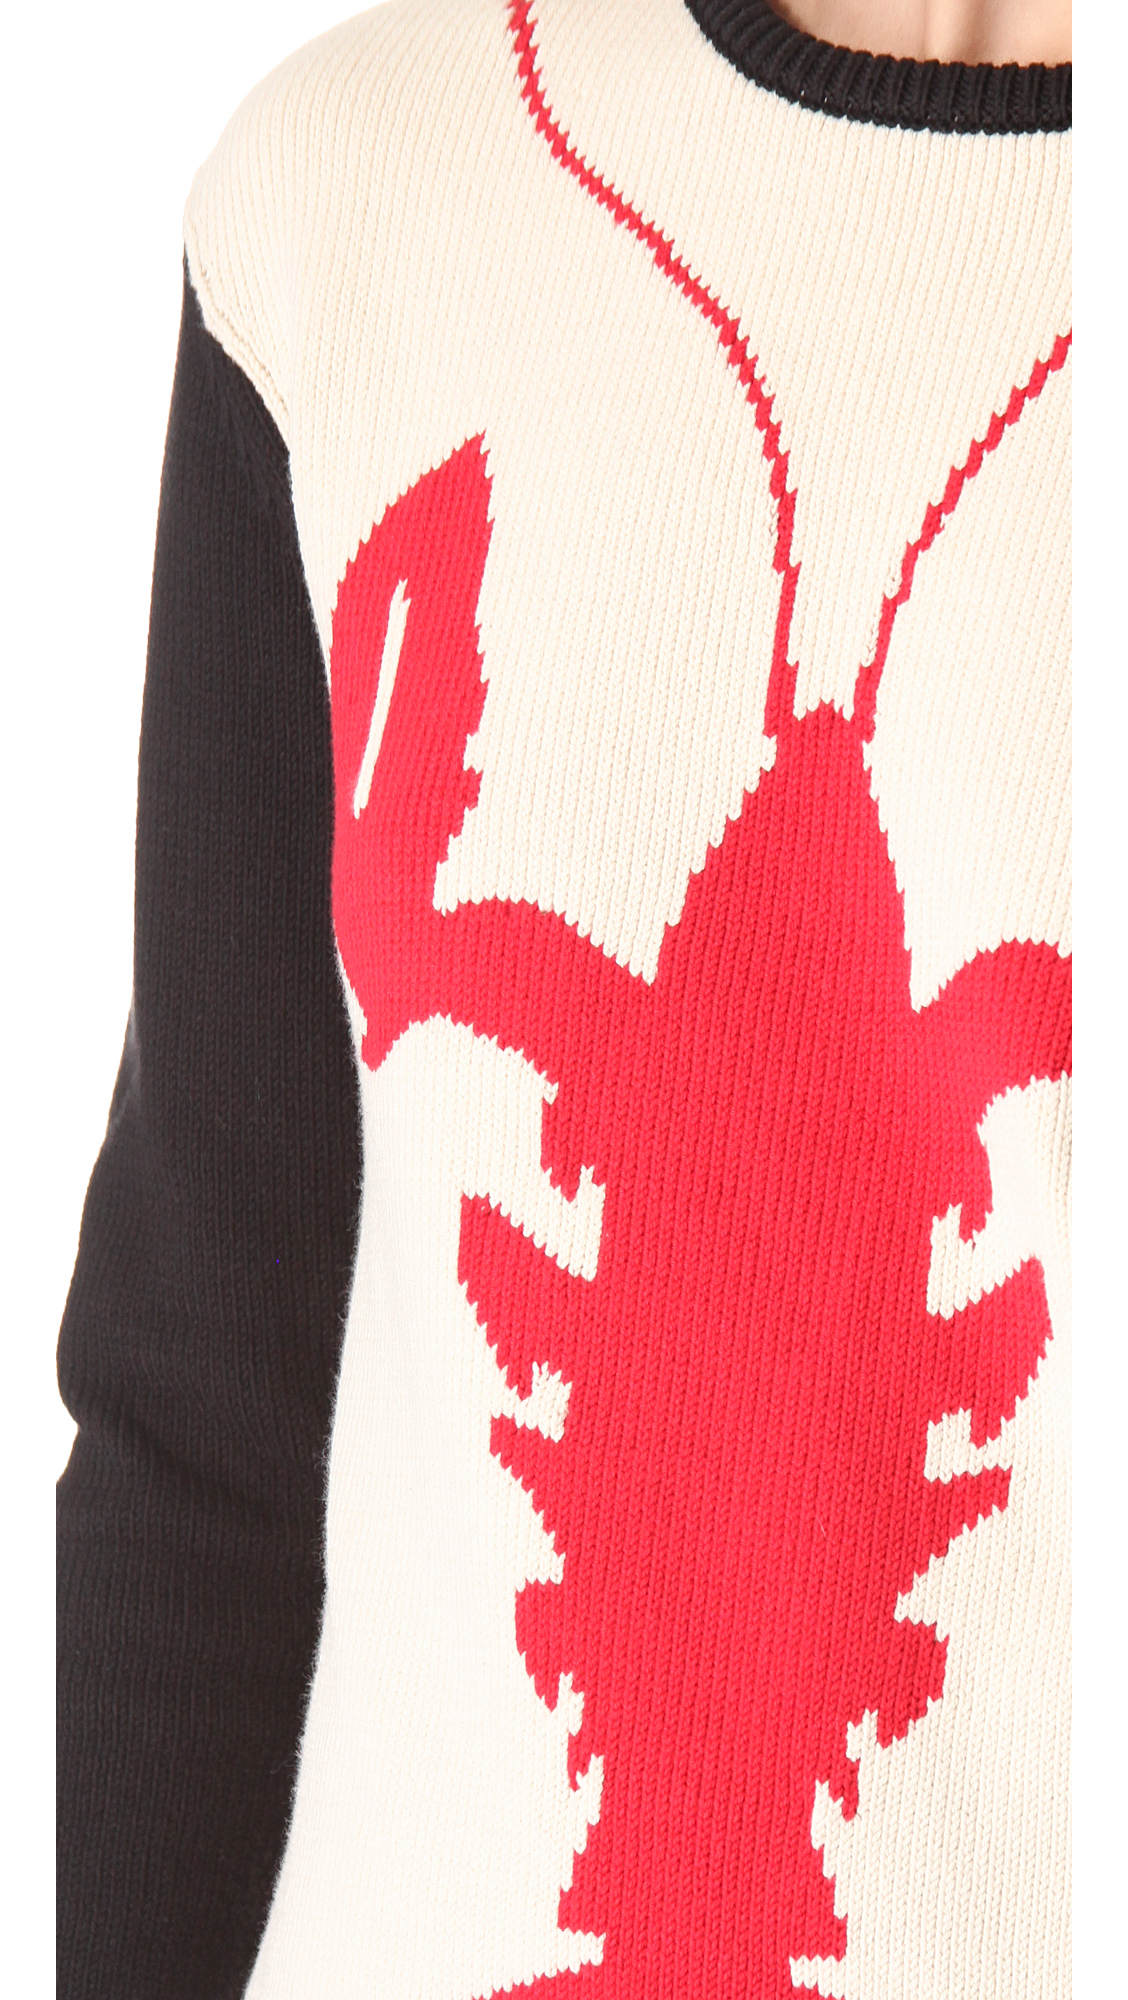 Lyst - Tibi Lobster Intarsia Cotton Sweater in Natural